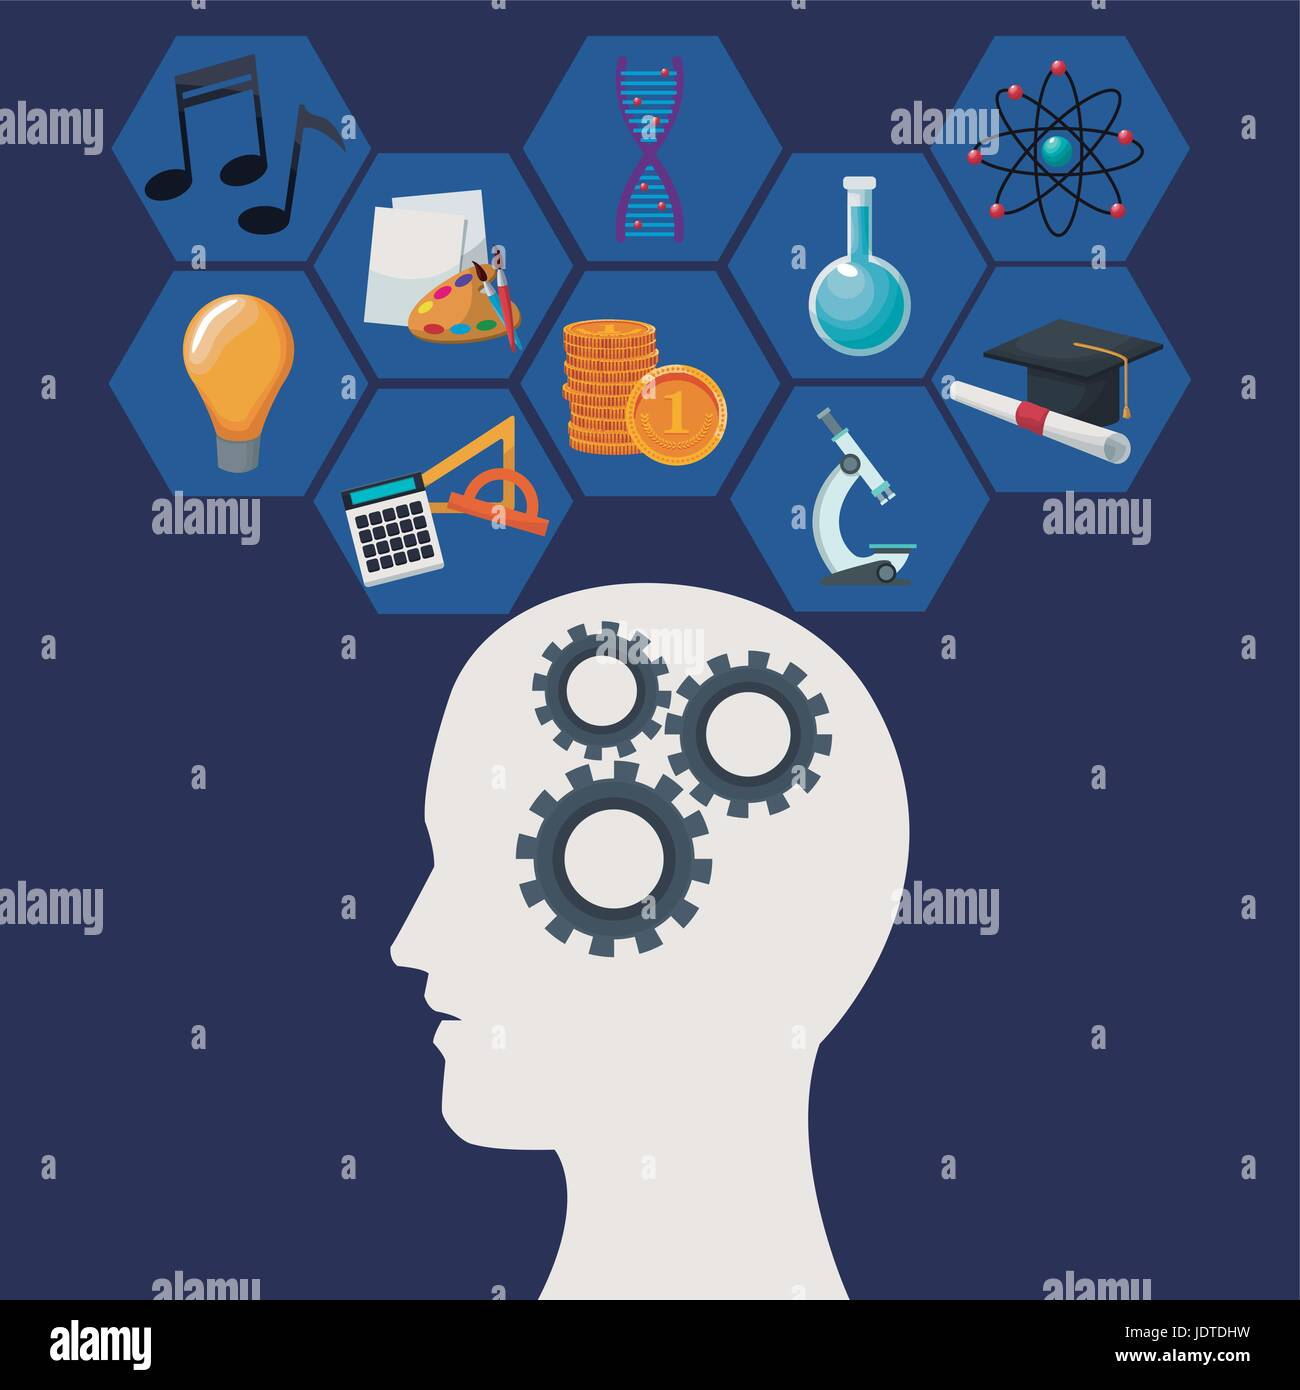 color background human head with mechanisms and geometric abstract figures icon knowledge - Stock Image